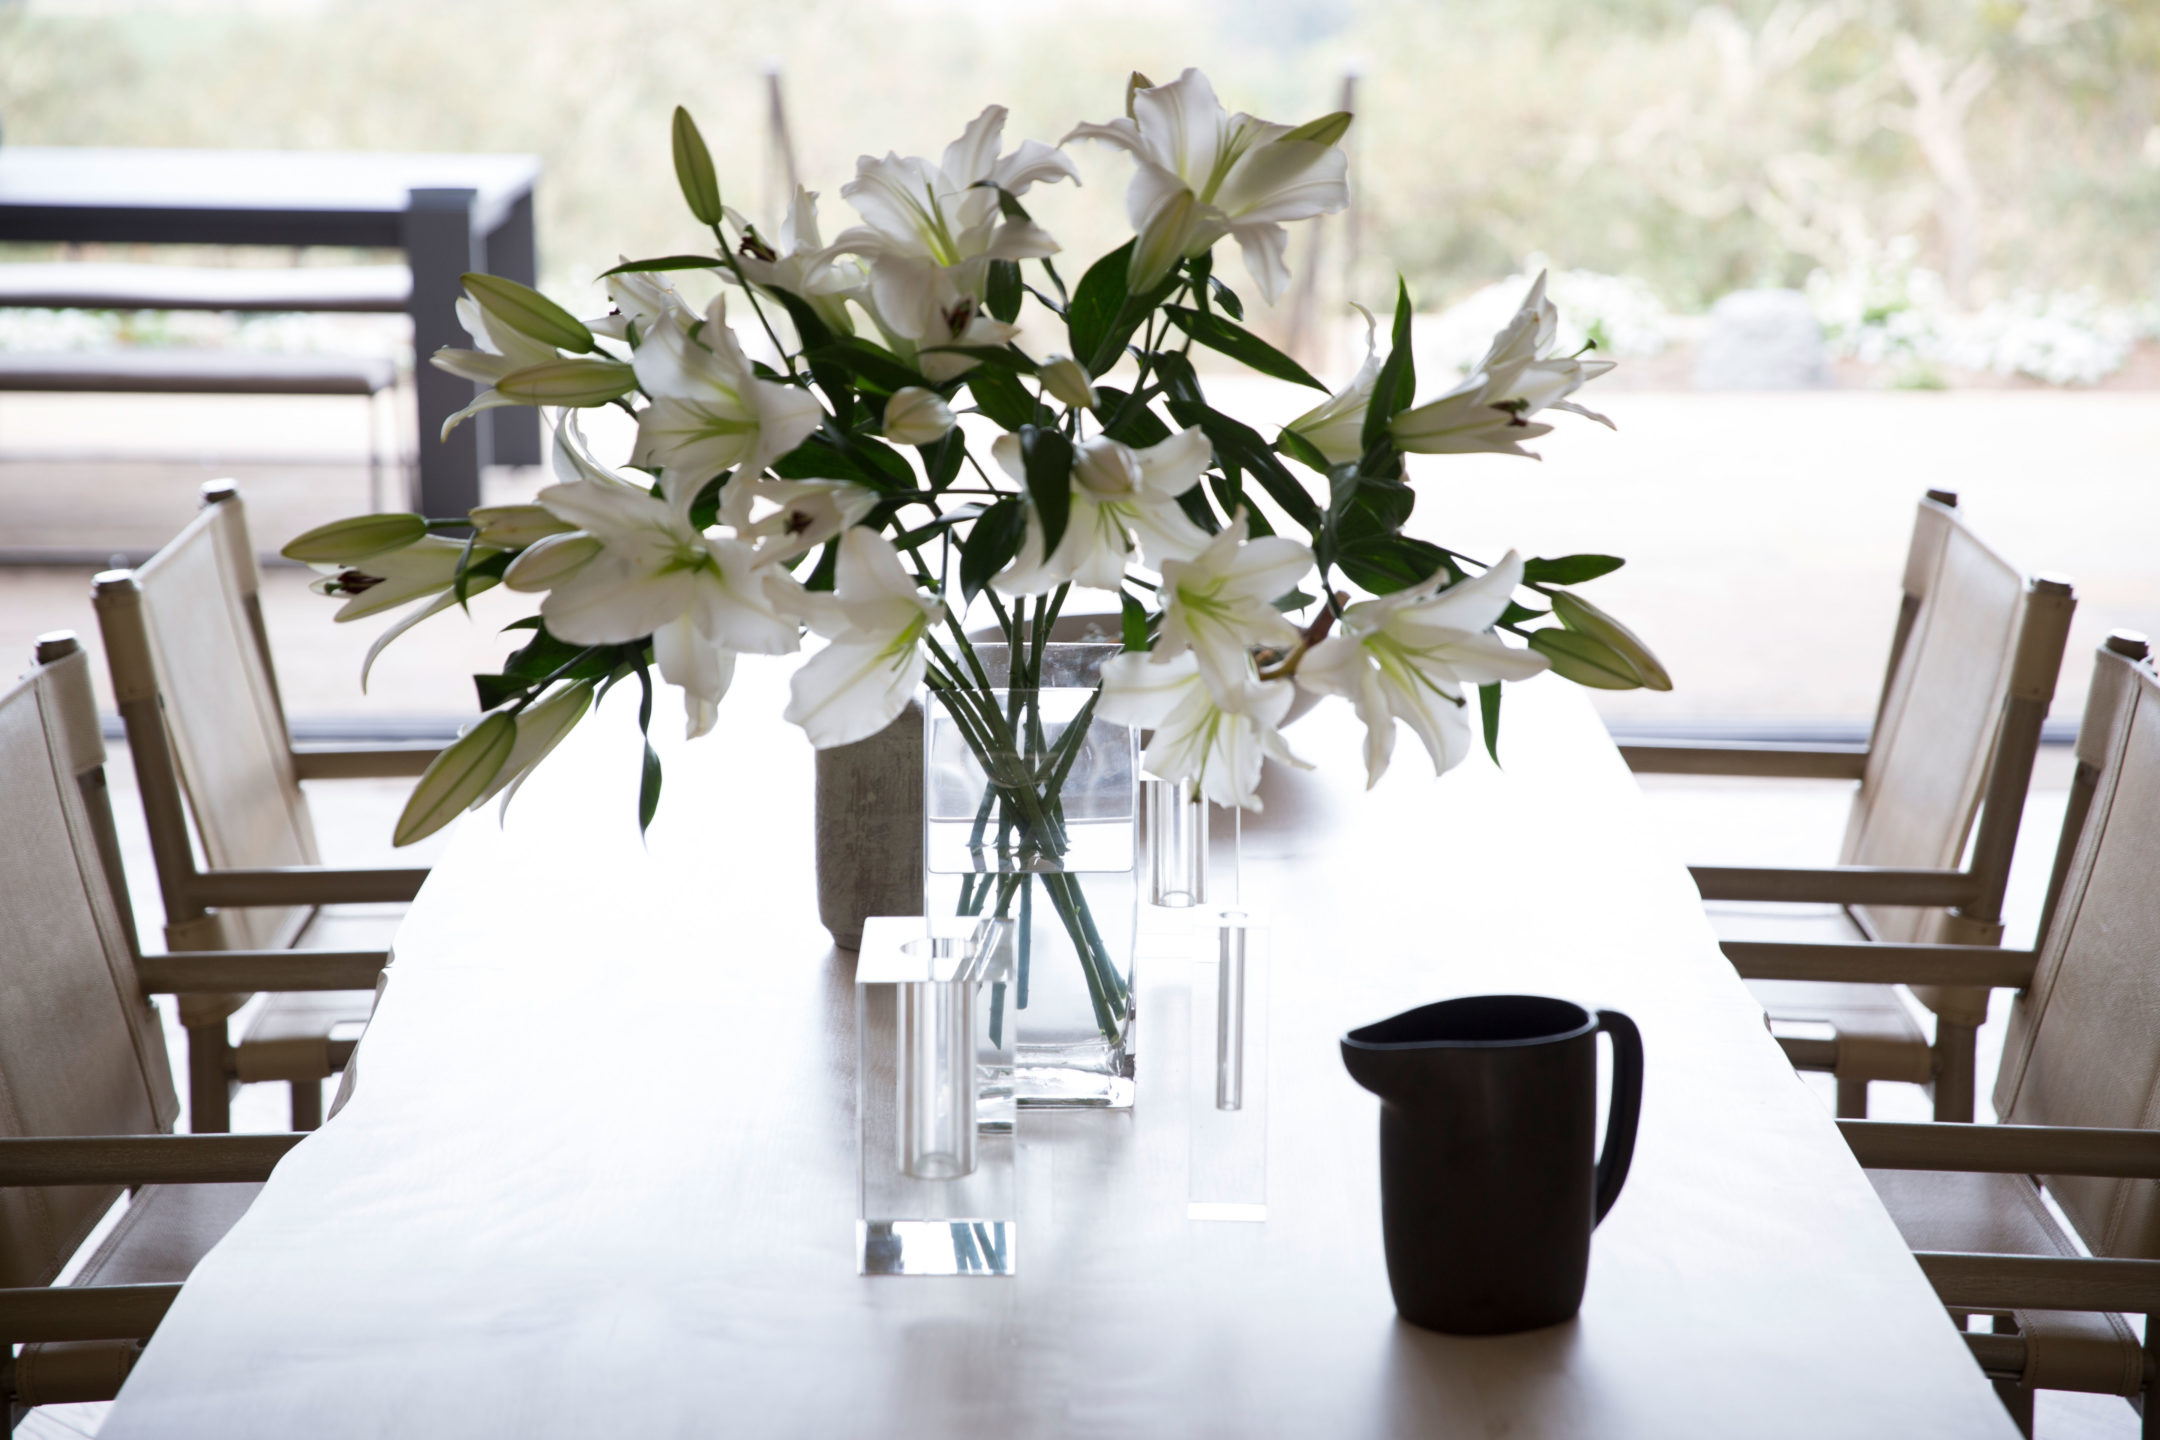 Jennifer_robins_interiors_projects_st_helena_details_flowers_table3Conn